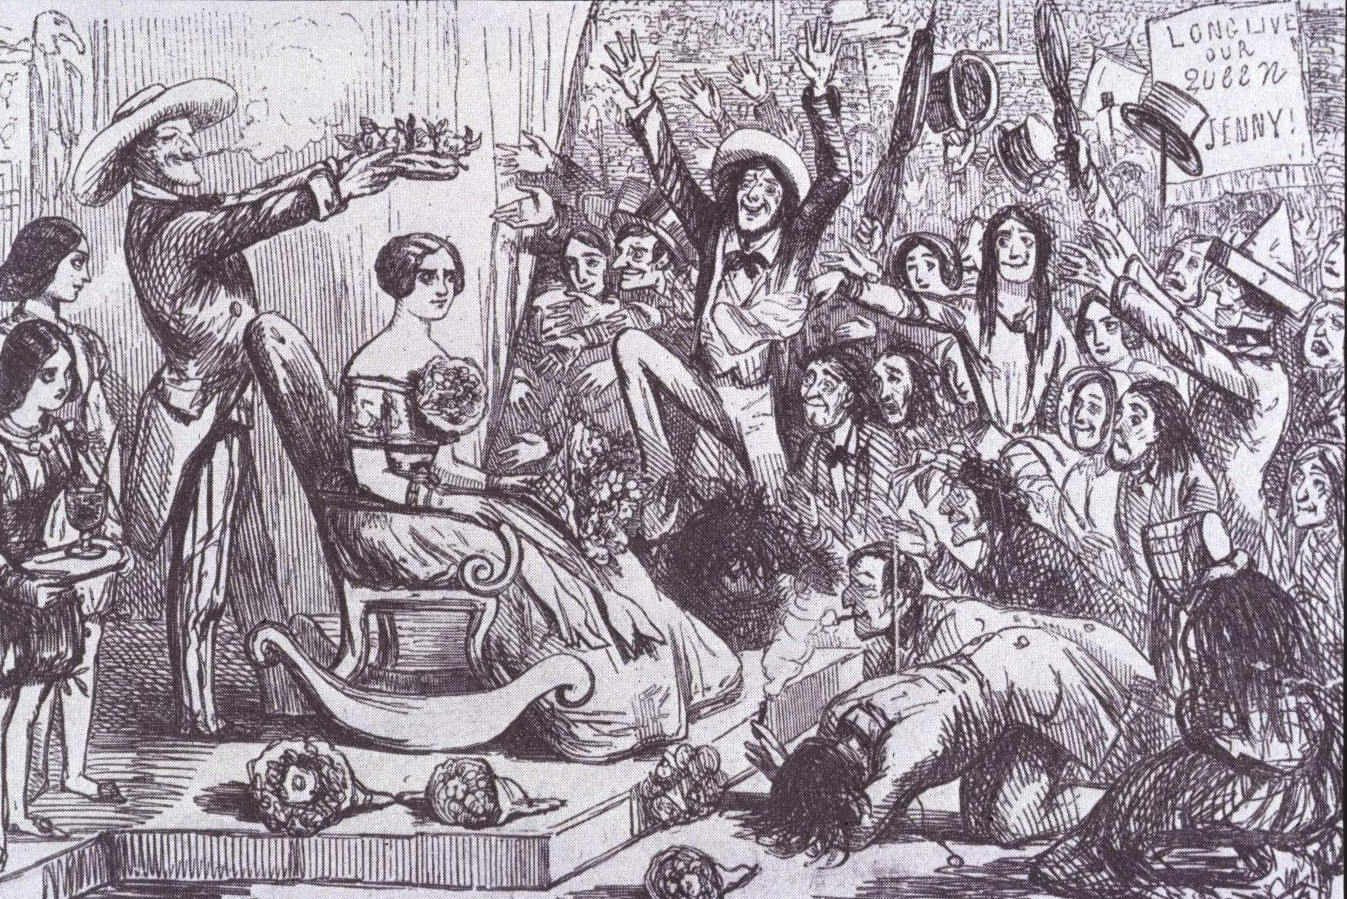 <b>Jenny Lind</b>     	</br>Caricature of Jenny Lind&#39;s first American tour for Phineas Taylor Barnum, New York City, October 1850</br><br/><b>Source: </b><i>Public Domain. https://commons.wikimedia.org/wiki/Jenny_Lind#/media/File:Barnum.jennylind.jpg</i>